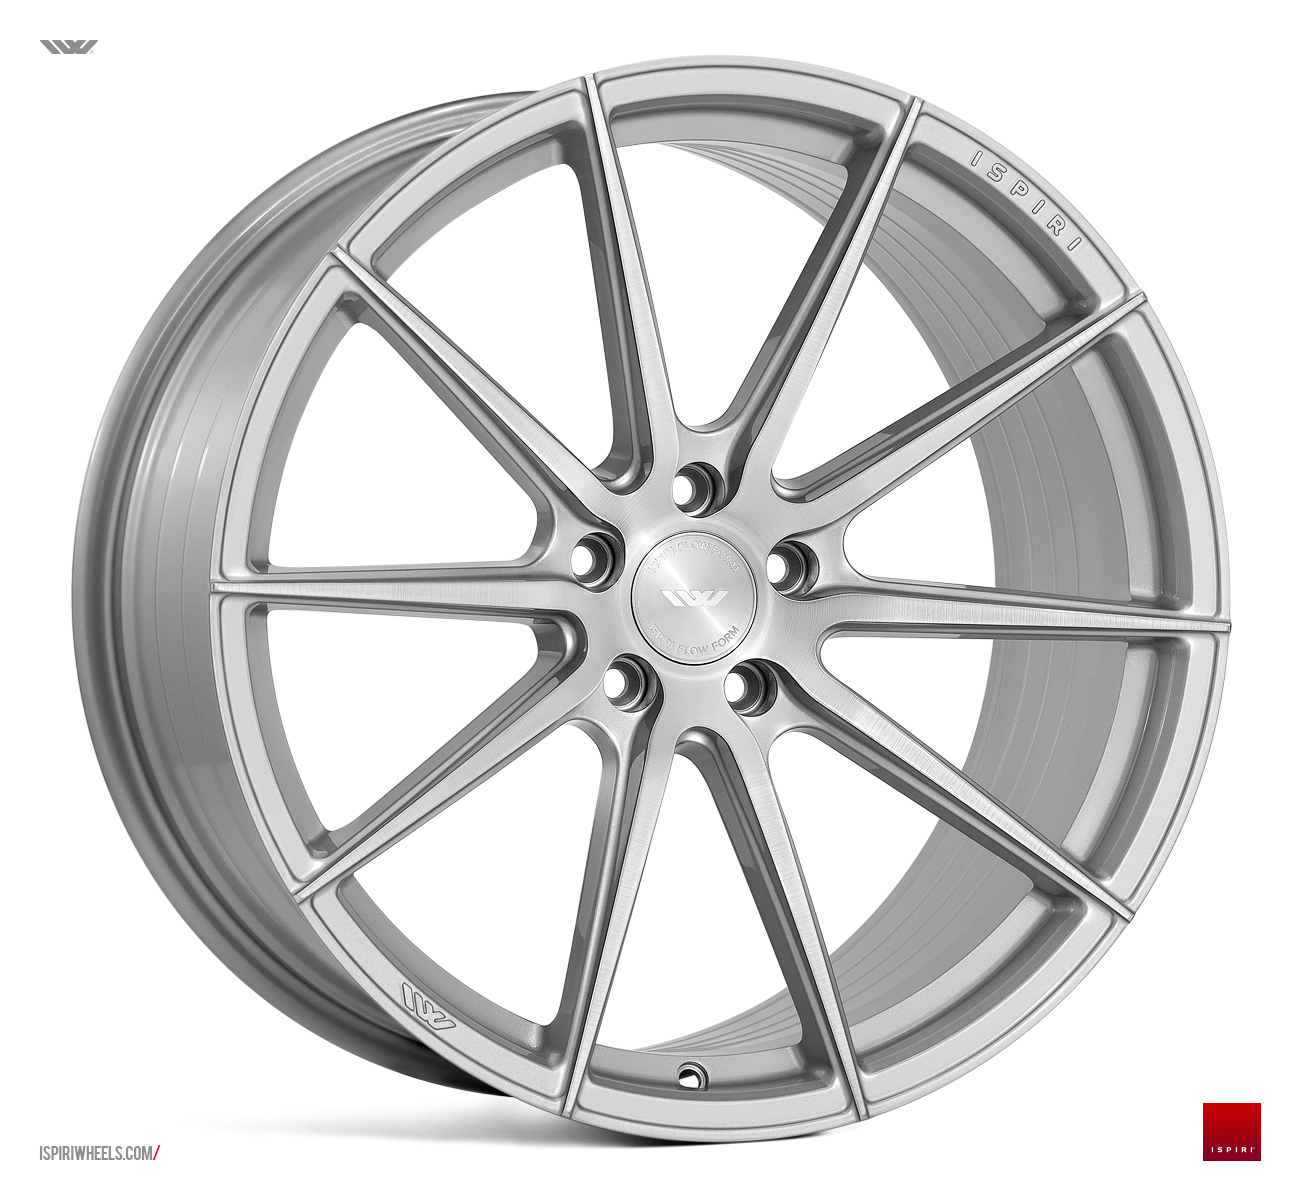 "NEW 20"" ISPIRI FFR1 MULTI-SPOKE ALLOY WHEELS IN SILVER WITH BRUSHED POLISH FACE, DEEPER CONCAVE 10"" or 10.5"" REARS"